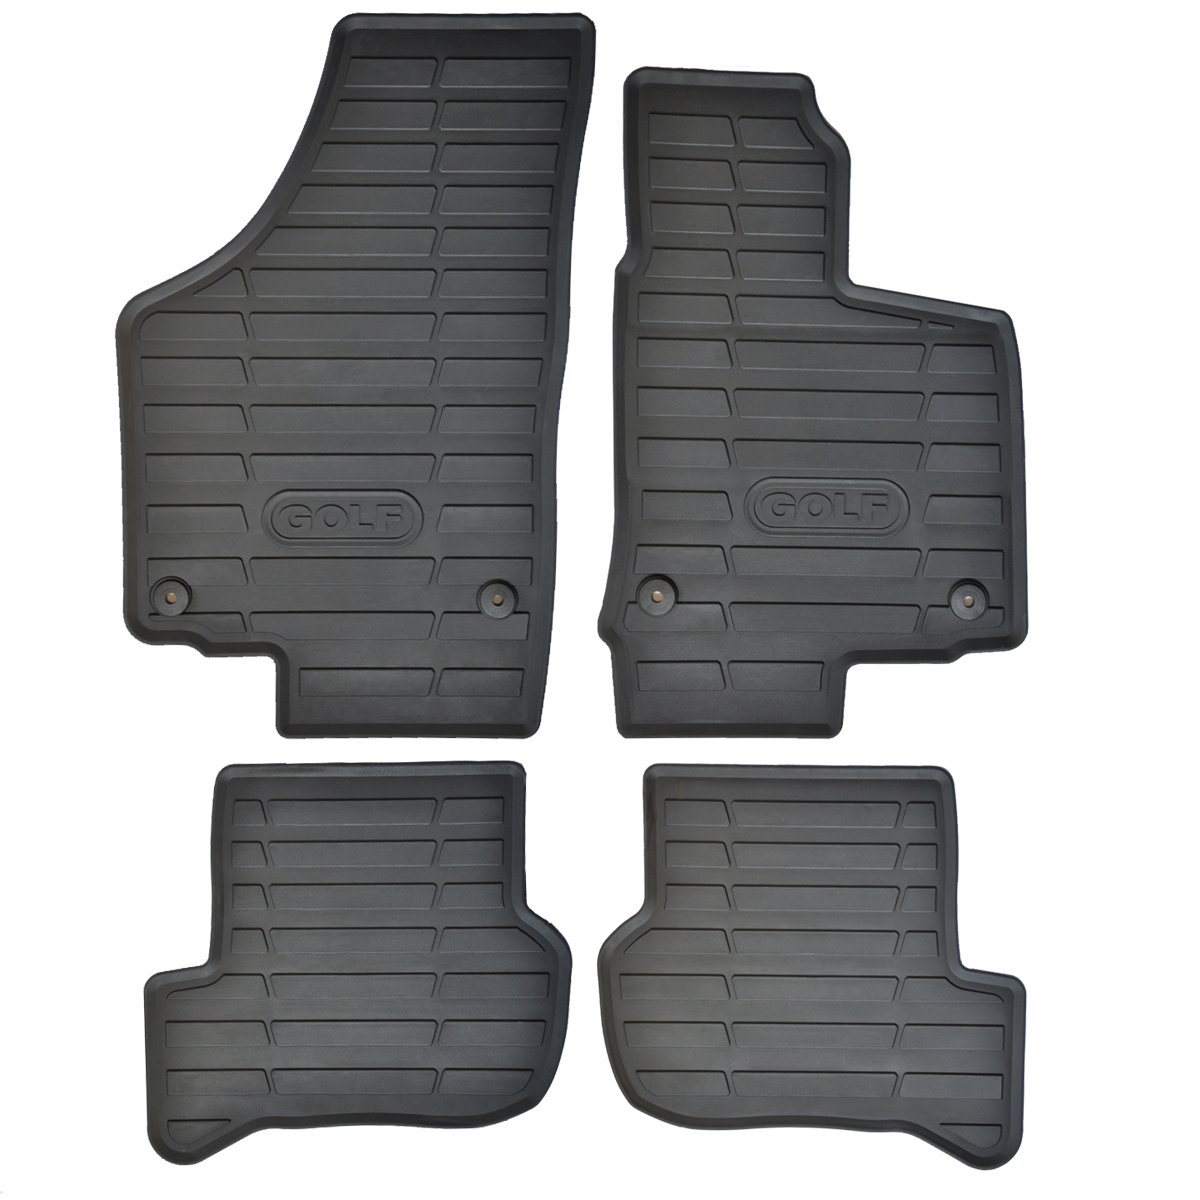 Rubber mats glasgow - Volkswagen Vw Golf Mk6 Rubber Car Mats 2009 12 Fully Tailored Amazon Co Uk Car Motorbike